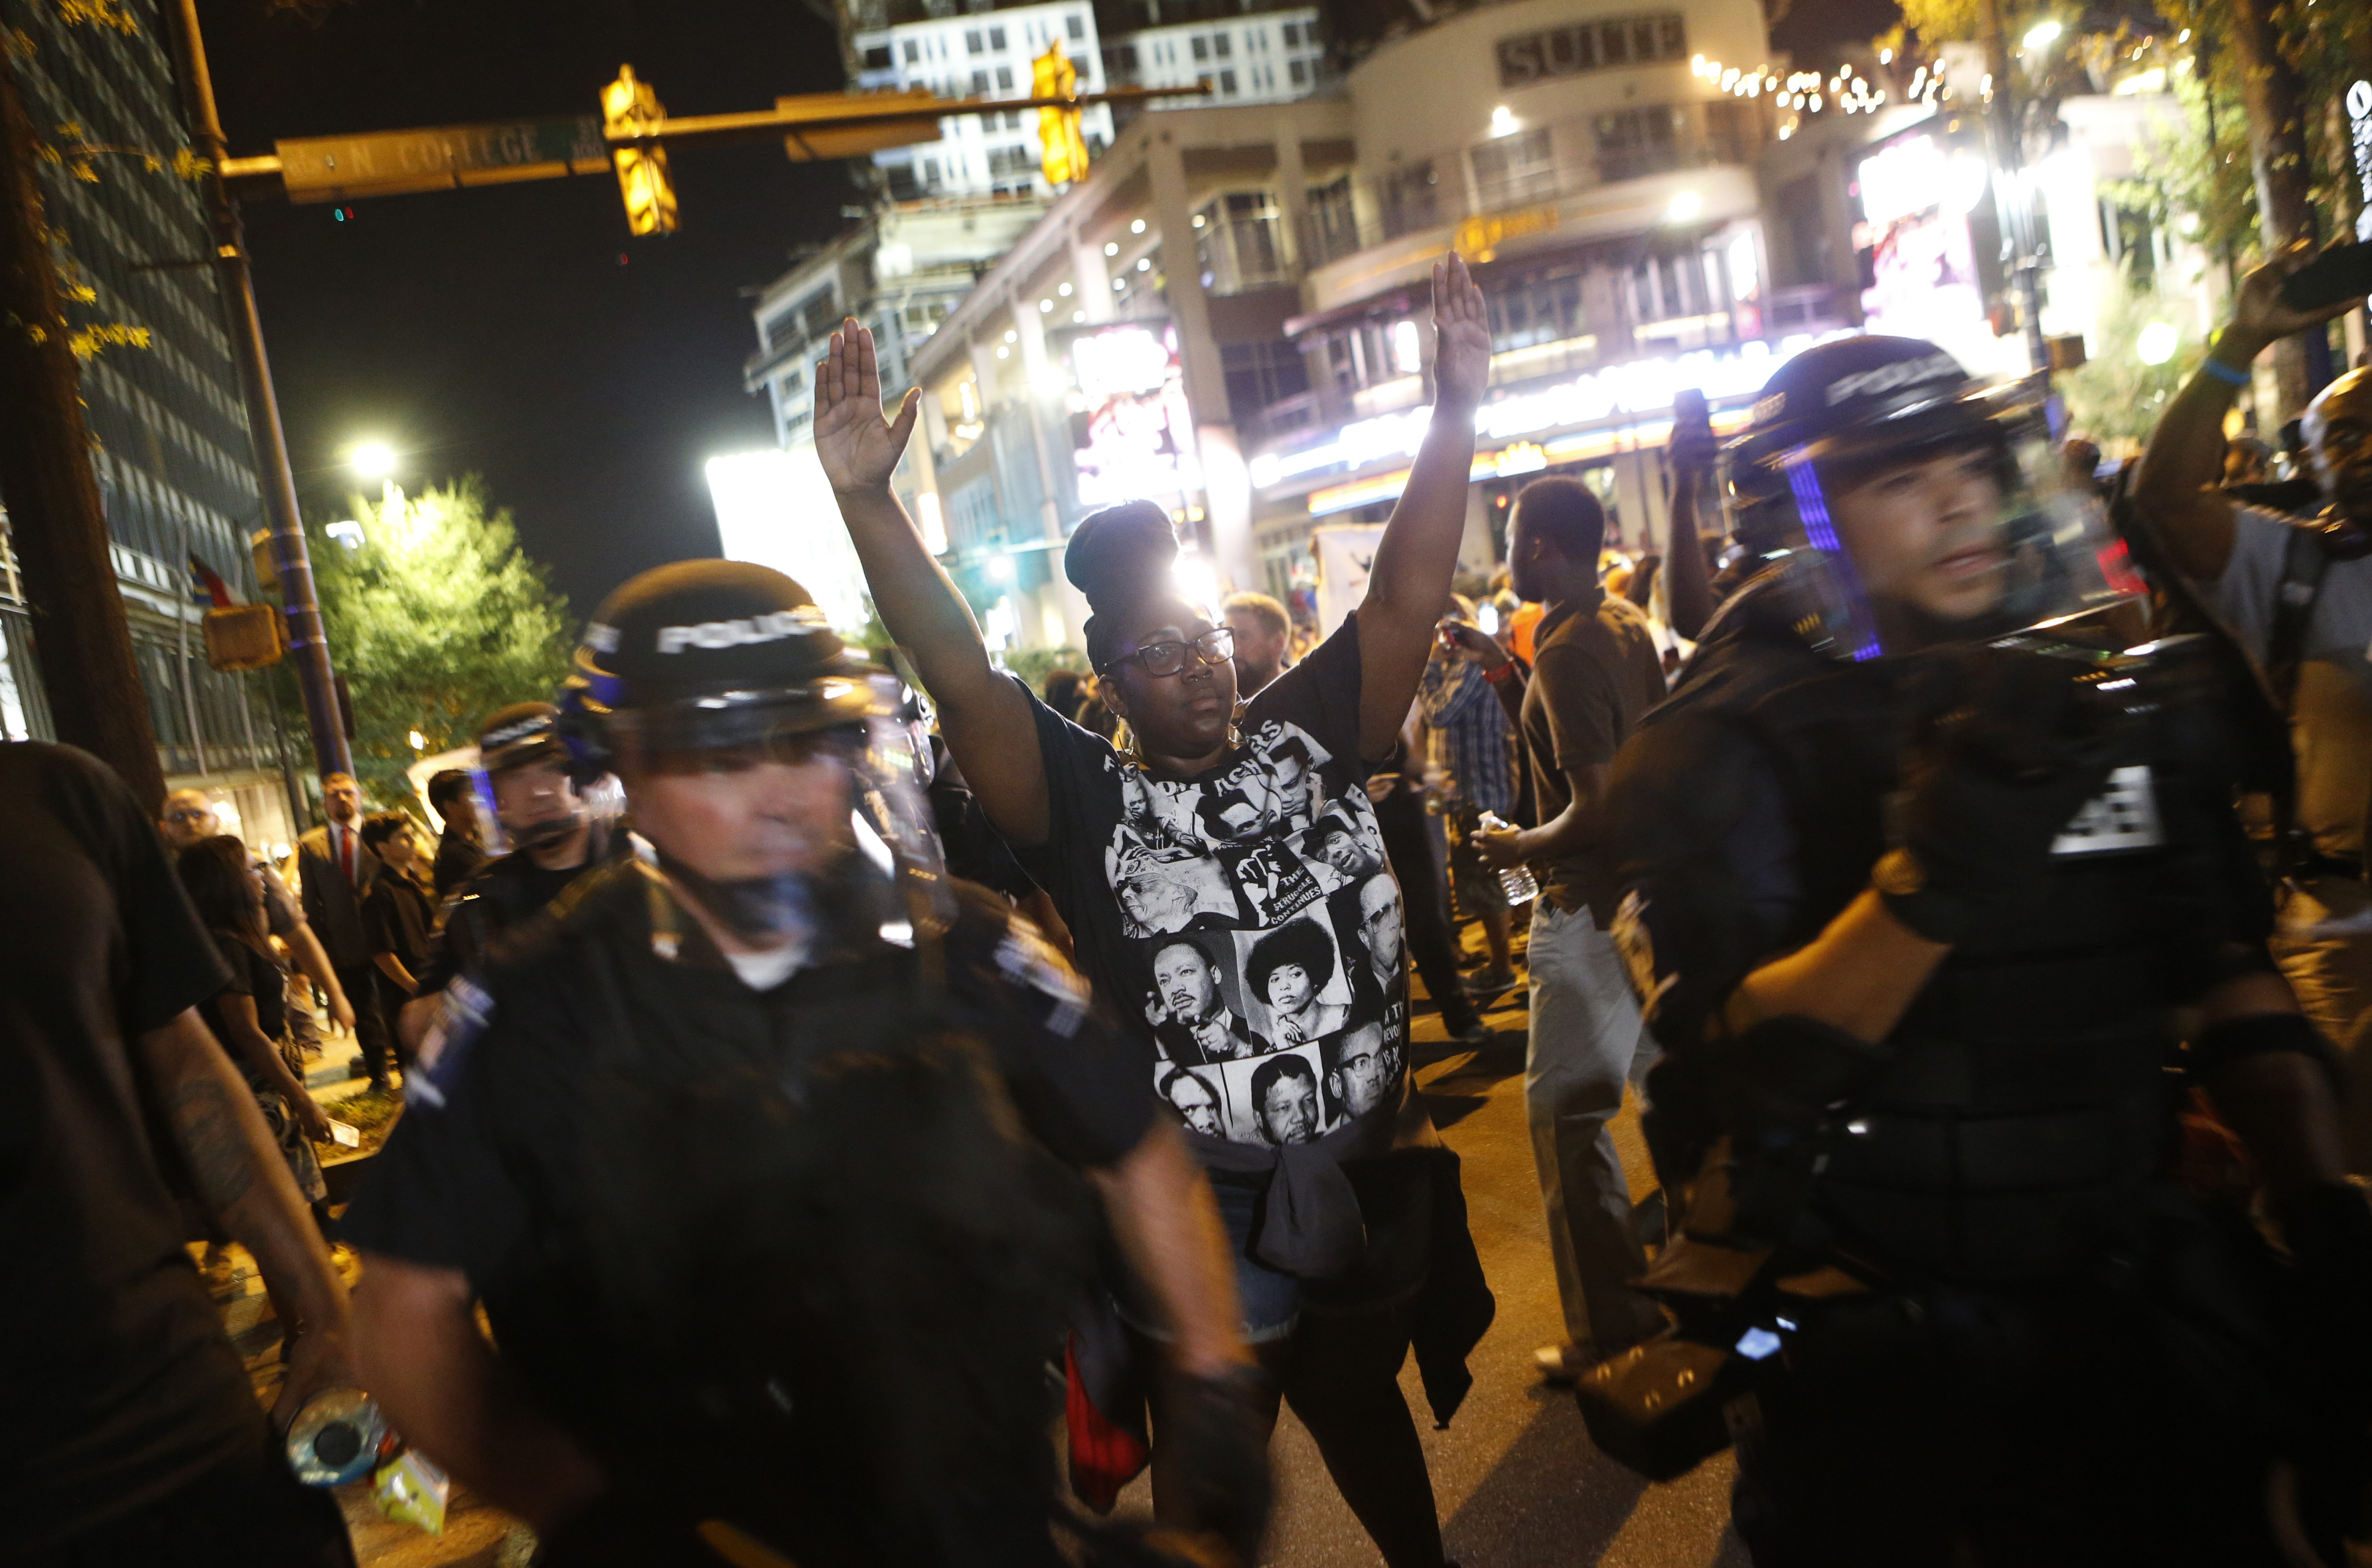 Protesters march Wednesday to protest the Tuesday shooting death of Keith Lamont Scott in Charlotte, N.C. Scott, who was black, was shot and killed by police officers, who say Scott was holding a gun and ignored instructions to drop it. Relatives and neighbors say he was holding a book.